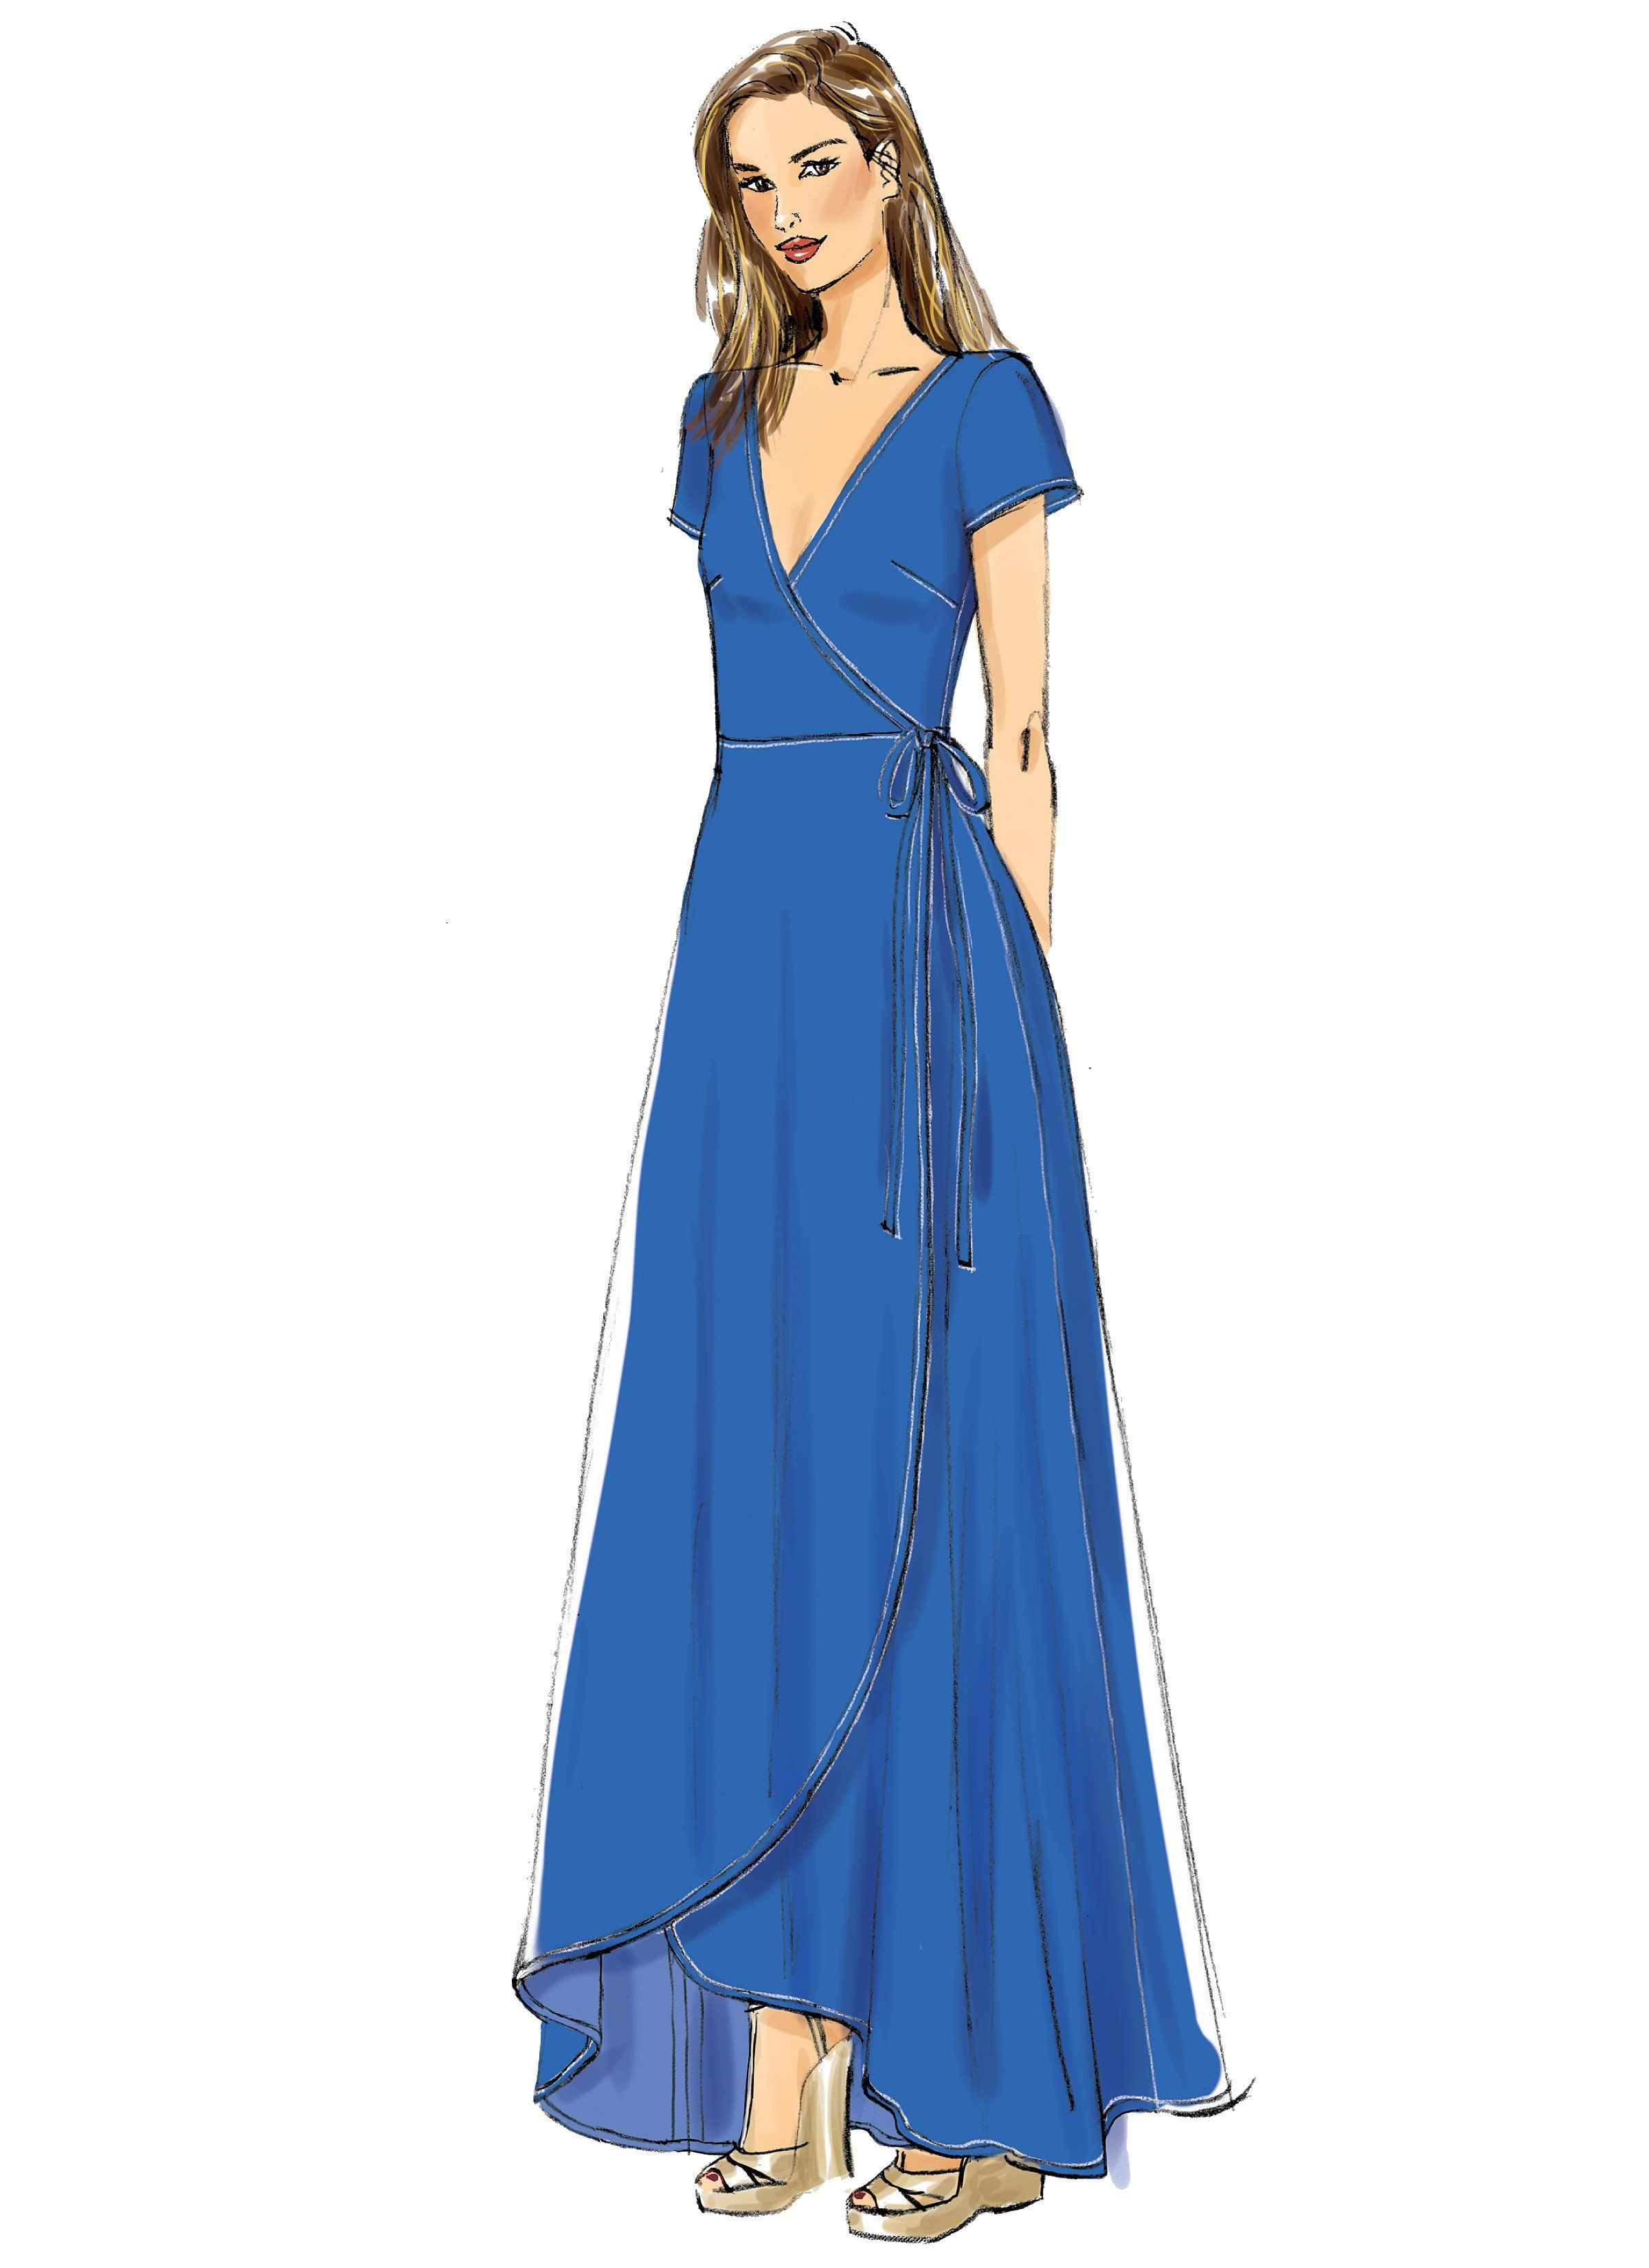 Vogue Pattern 9251 Wrap Dresses with Ties, Sleeve Length